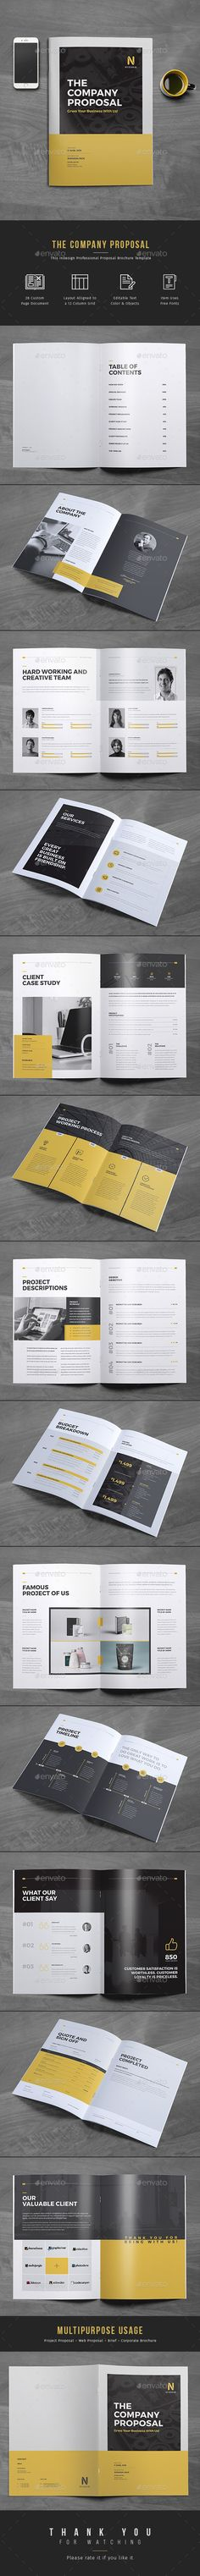 33 Professional Grade Free Invoice Templates for MS Word - it project proposal template free download